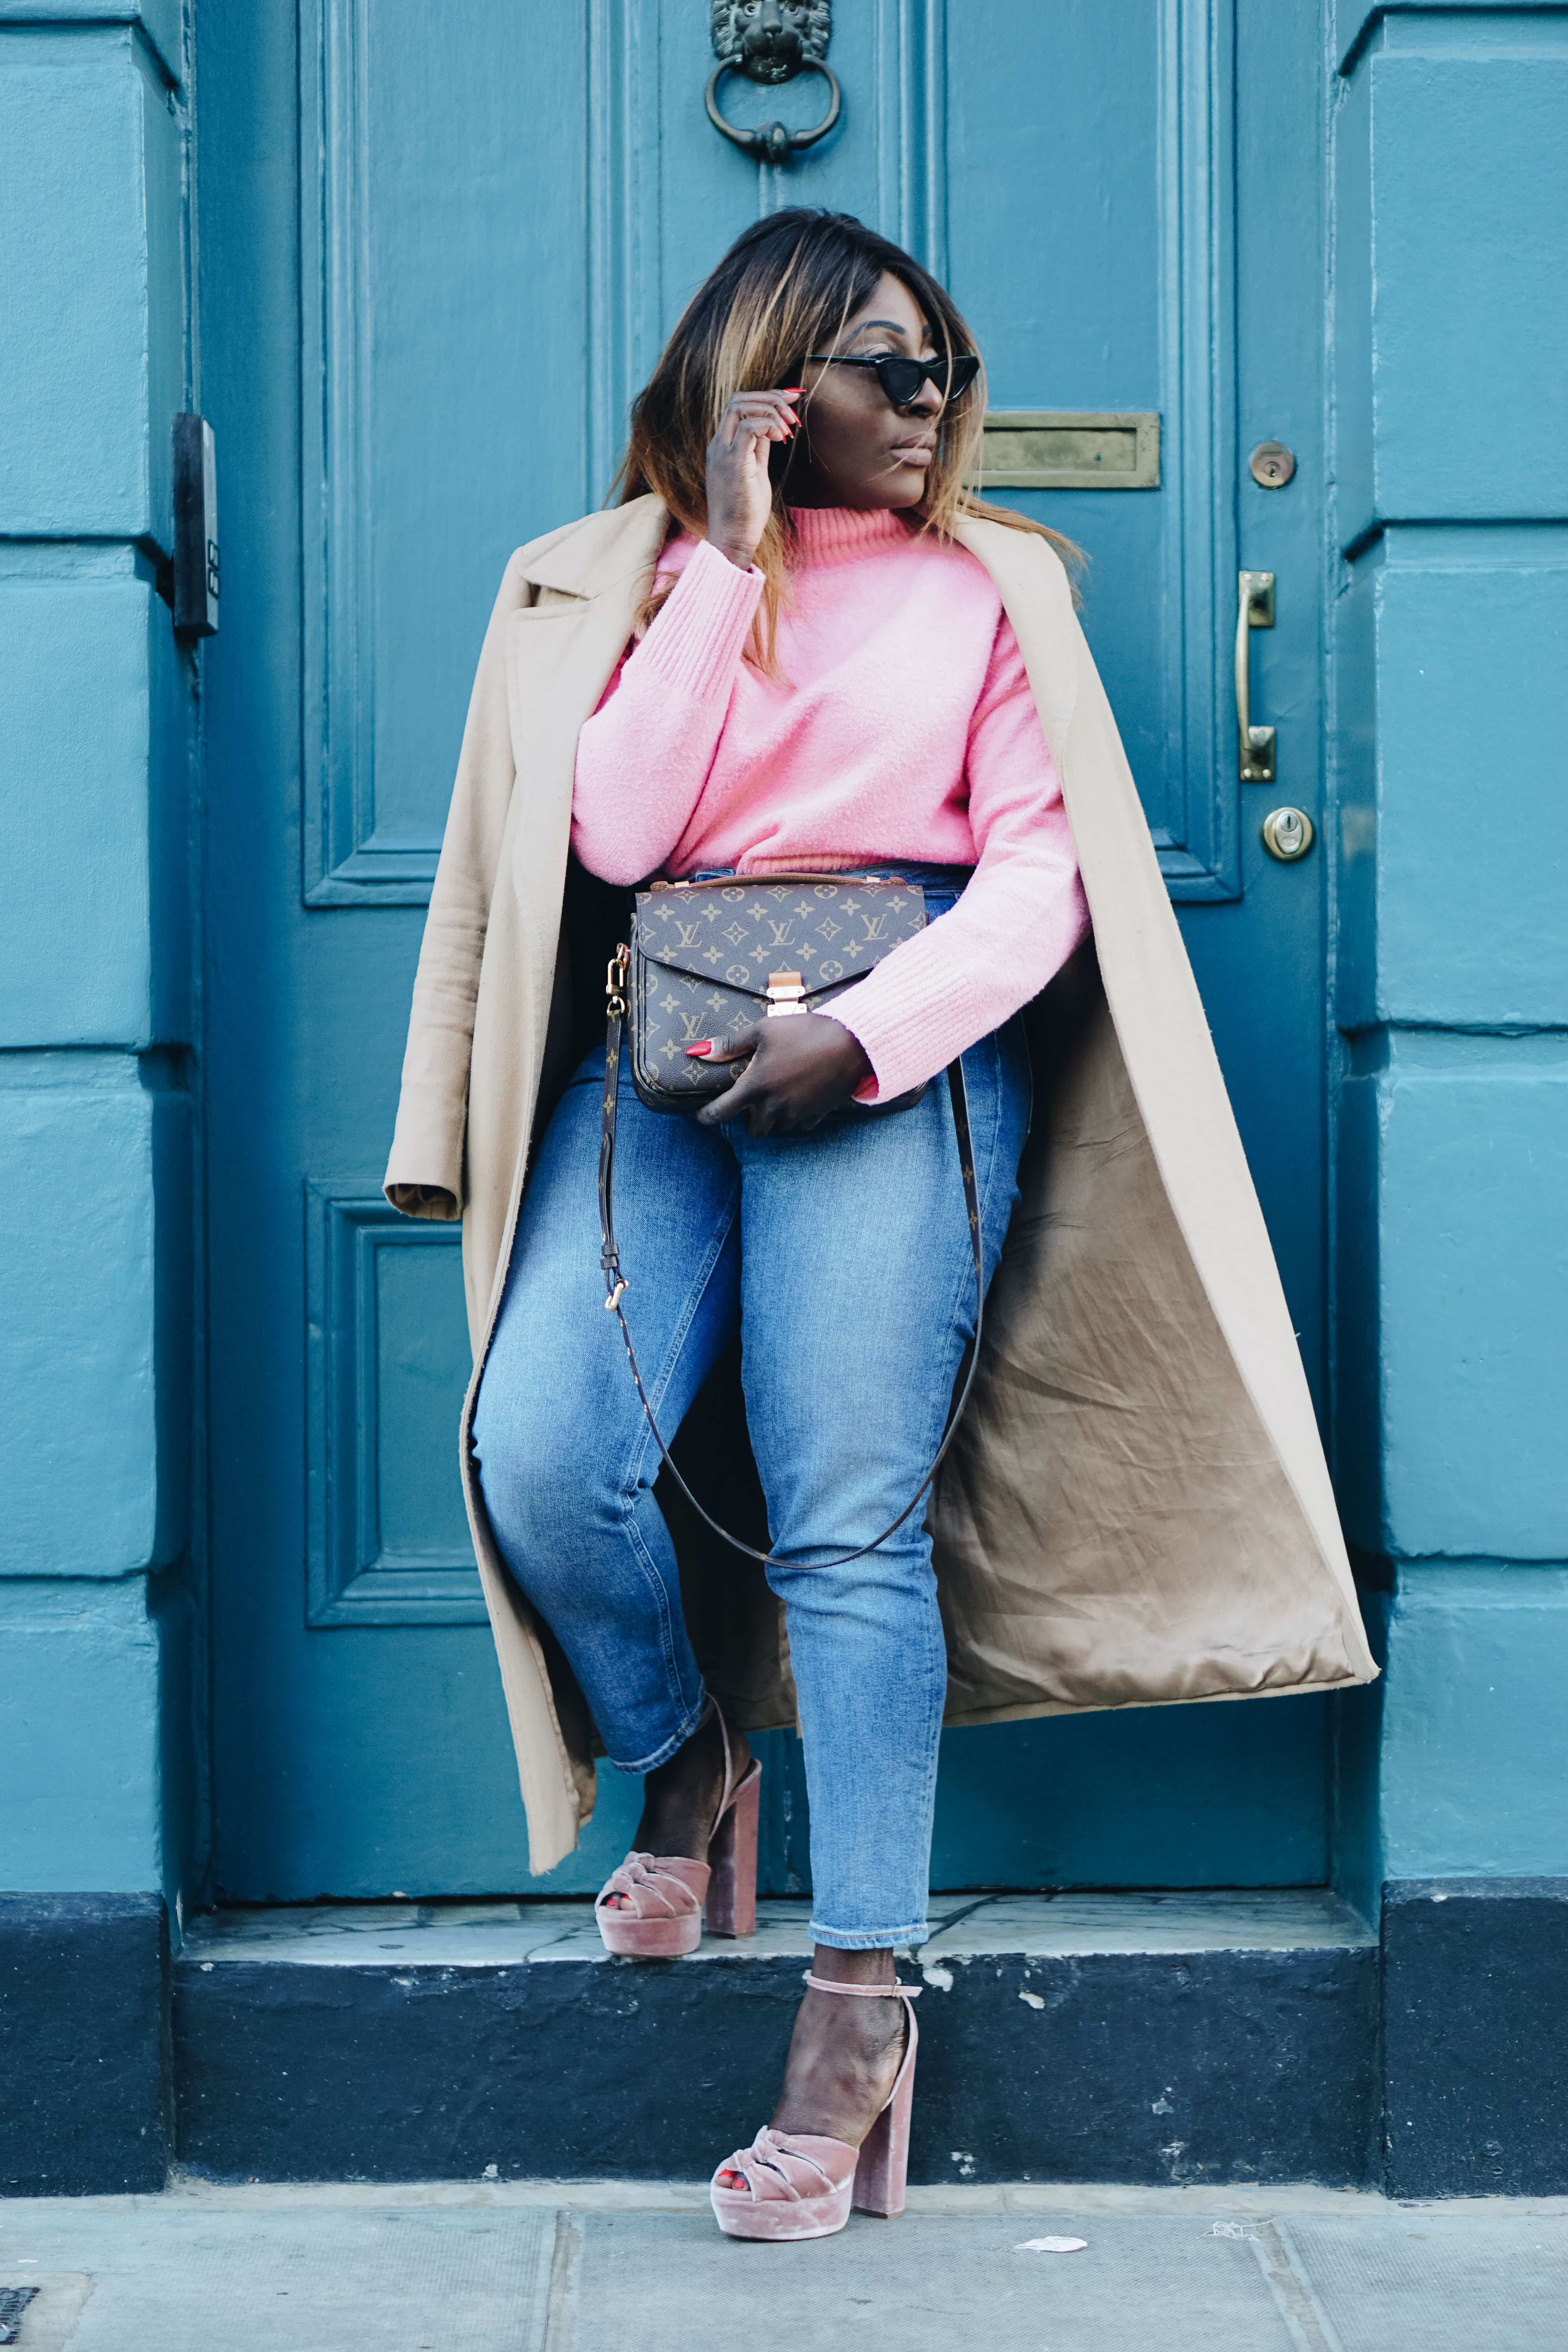 How Should You Invest Your Time in 2018 -3 - and other stories jumper - pochette metis Louis Vuitton - pink knitwear - aquazzura heels - les specs sunglasses - Style and the Sass